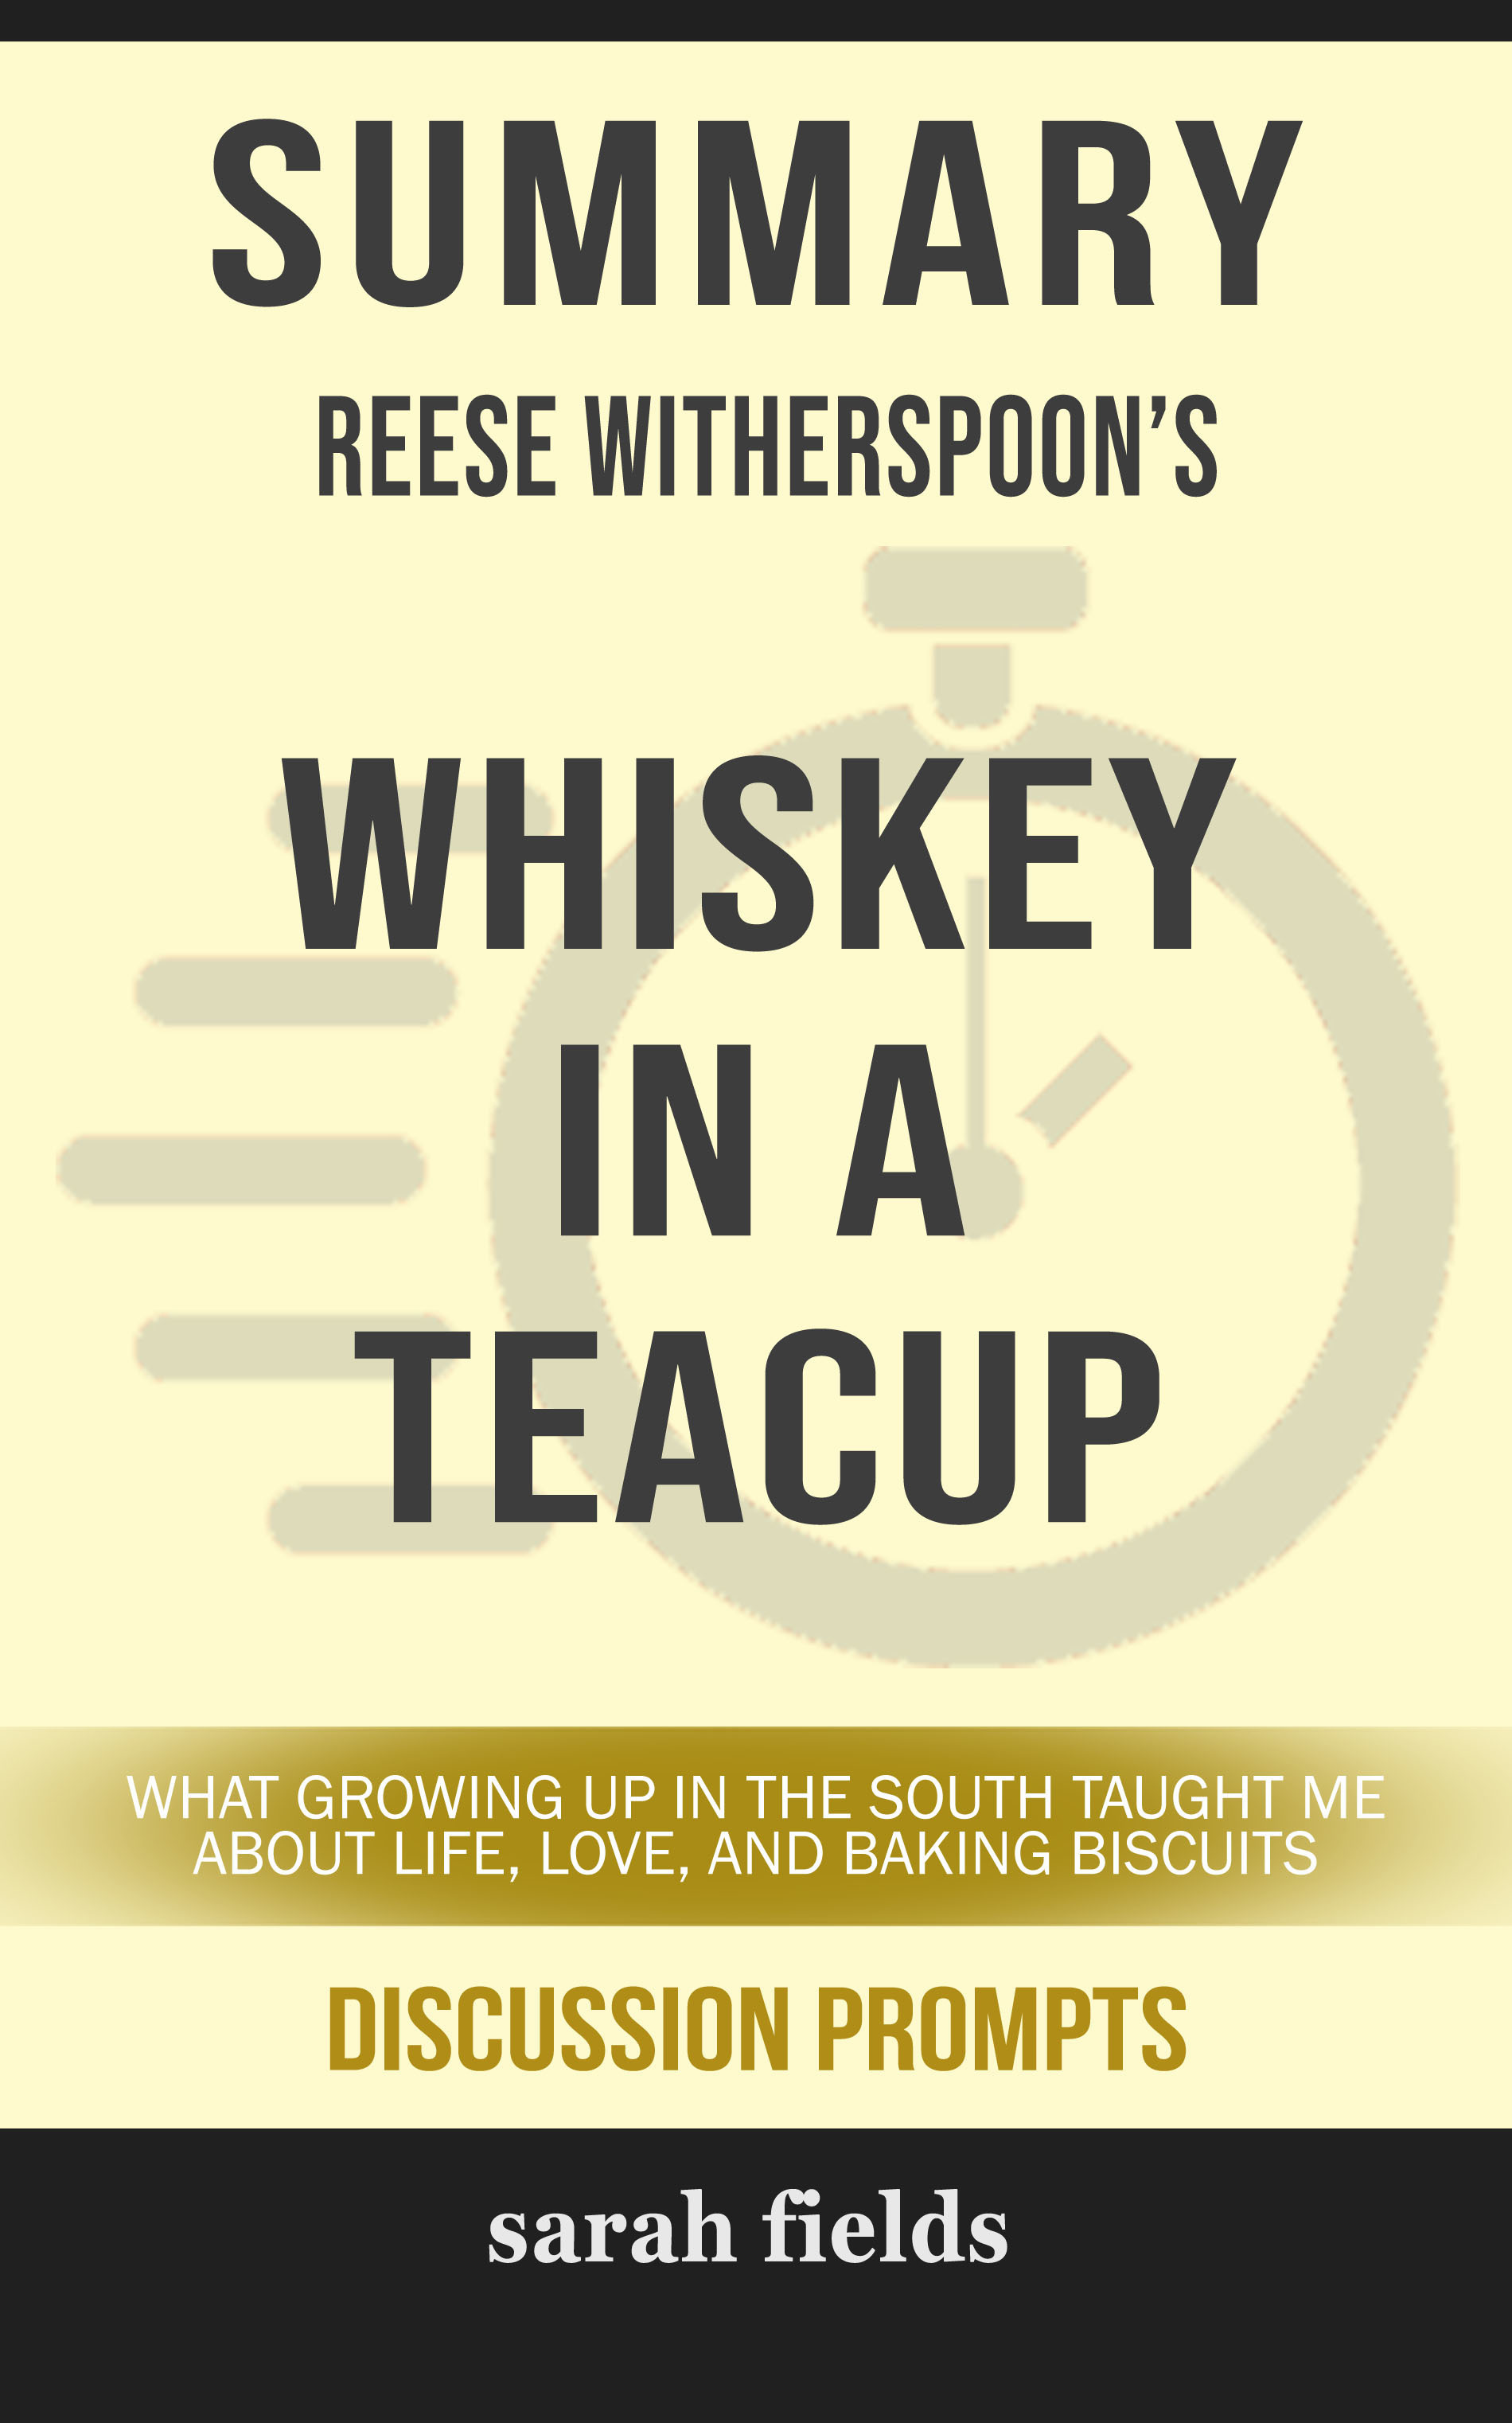 Summary of Whiskey in a Teacup: What Growing Up in the South Taught Me About Life, Love, and Baking Biscuits by Reese Witherspoon